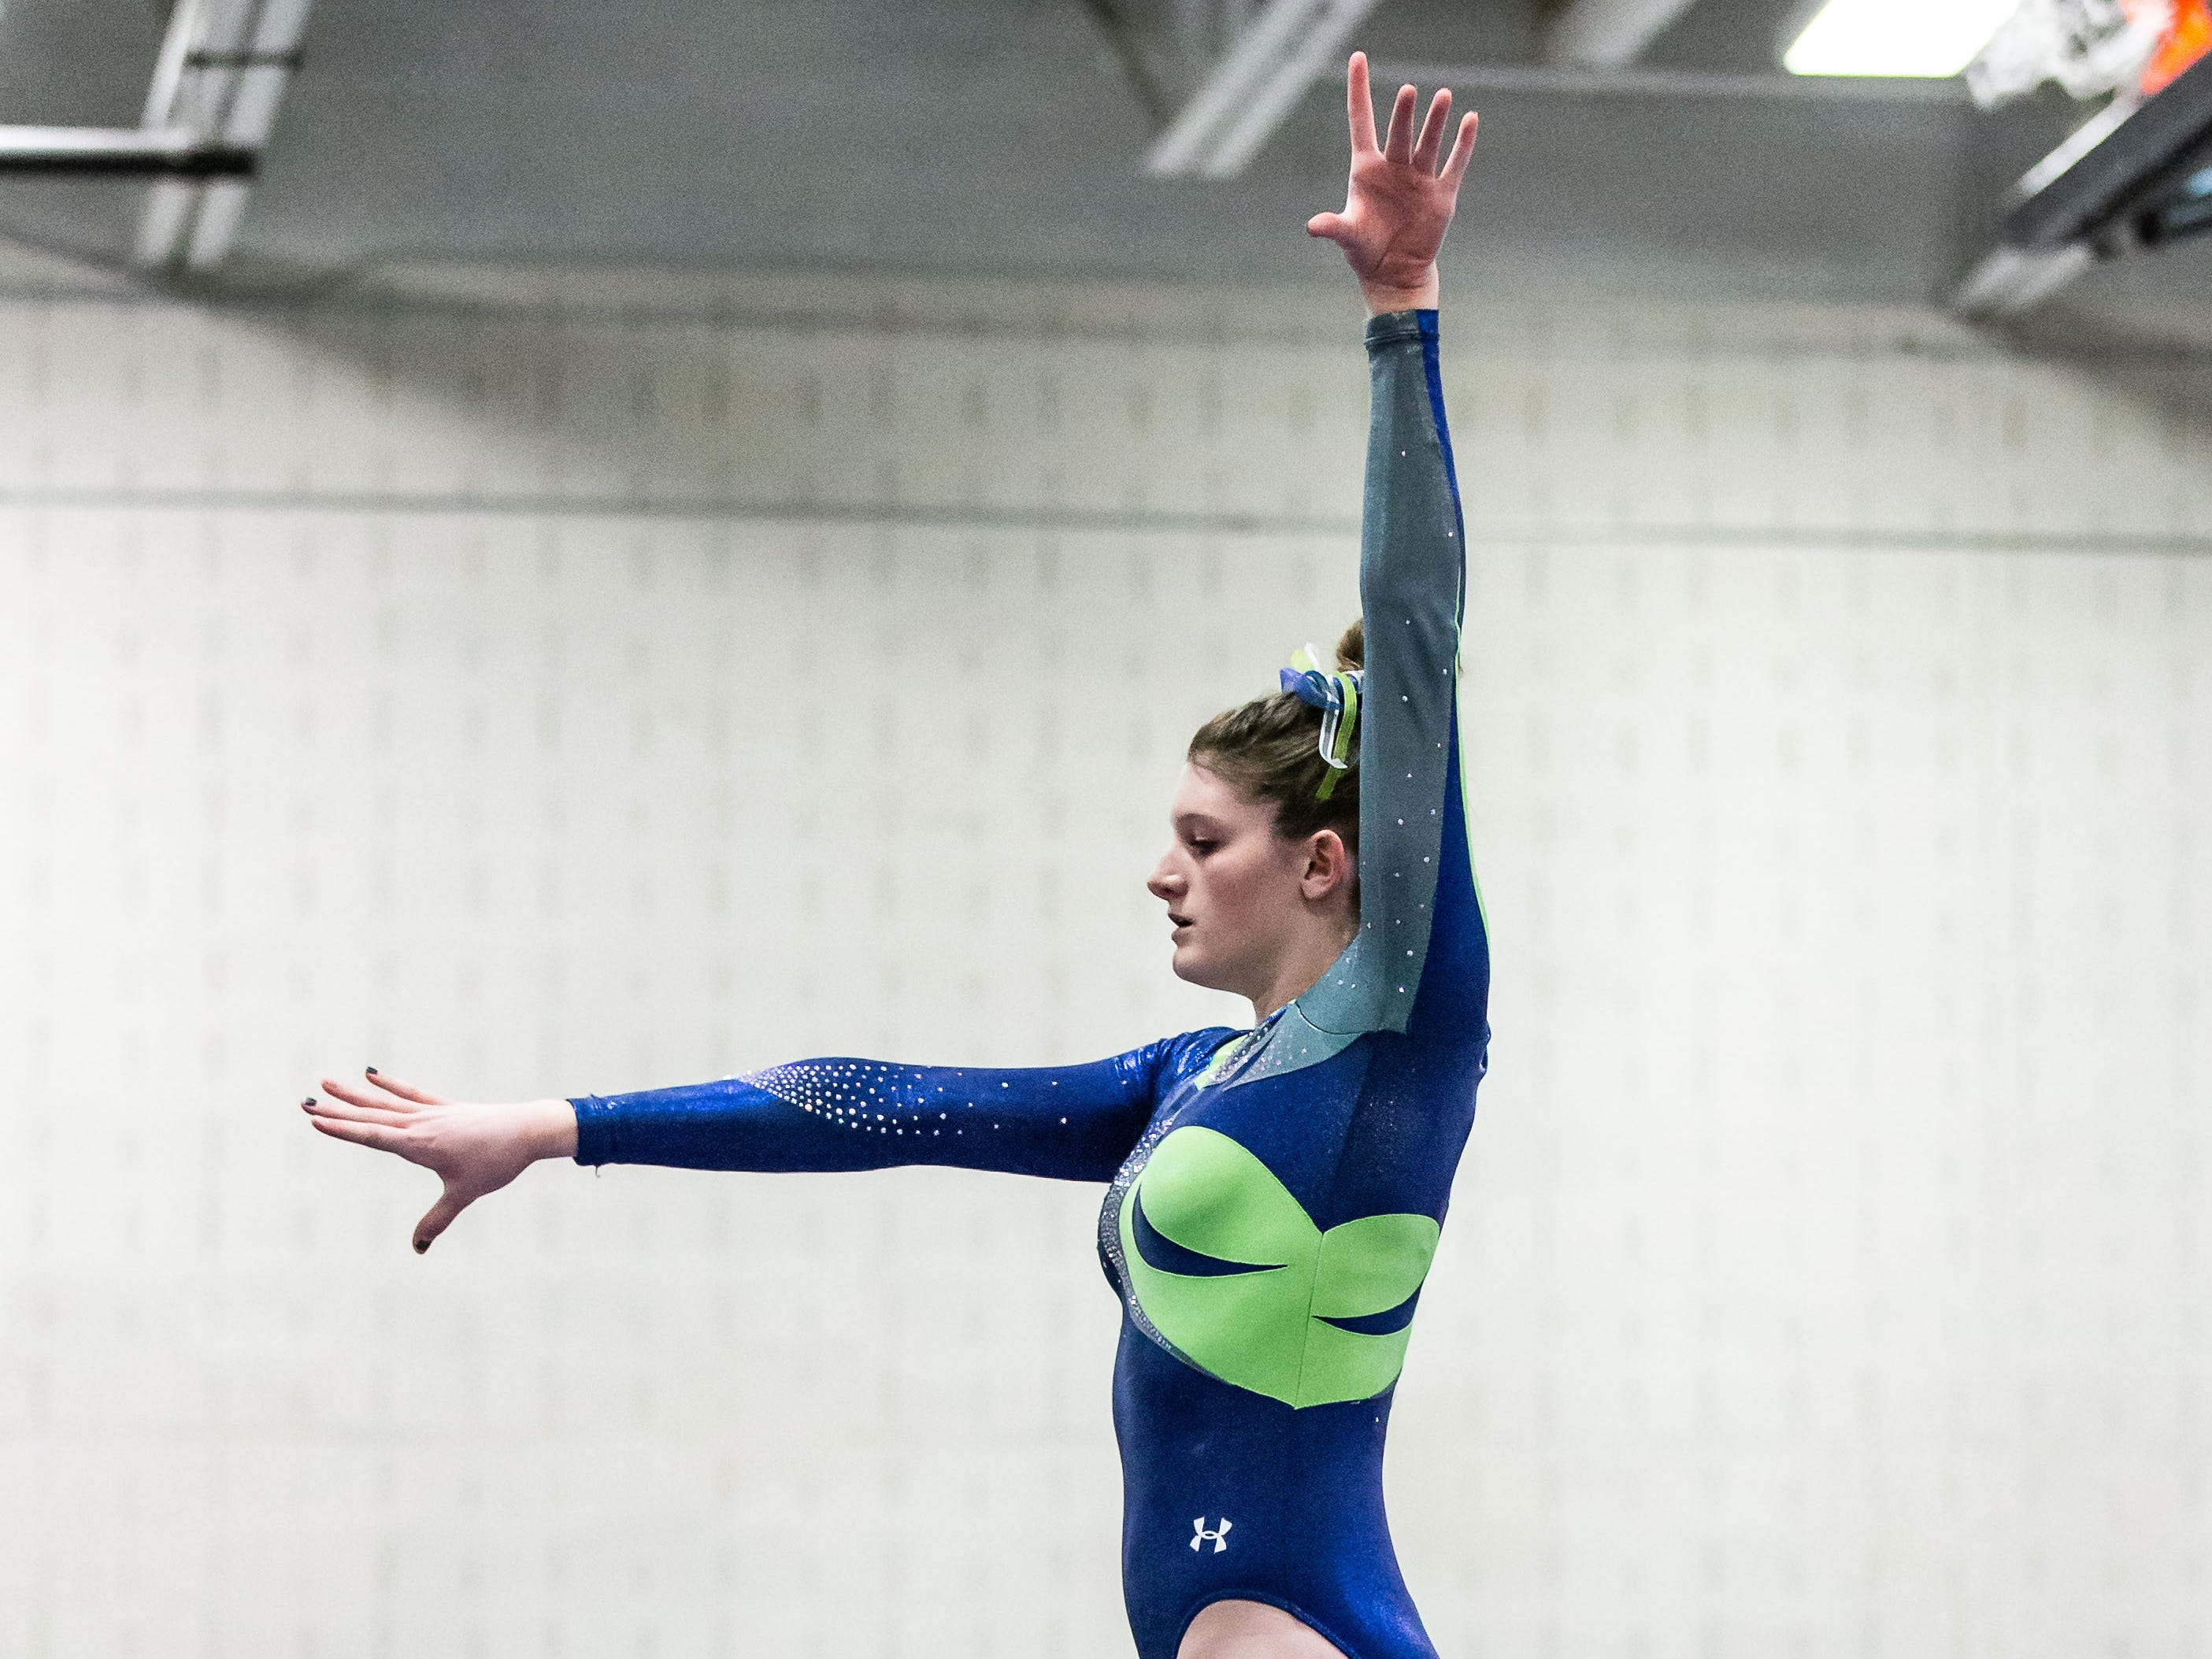 Whitefish Bay gymnast Emma Fox competes on the beam during the meet at Nicolet on Thursday, Jan. 3, 2019. Fox placed second in the event with a score of 8.85.